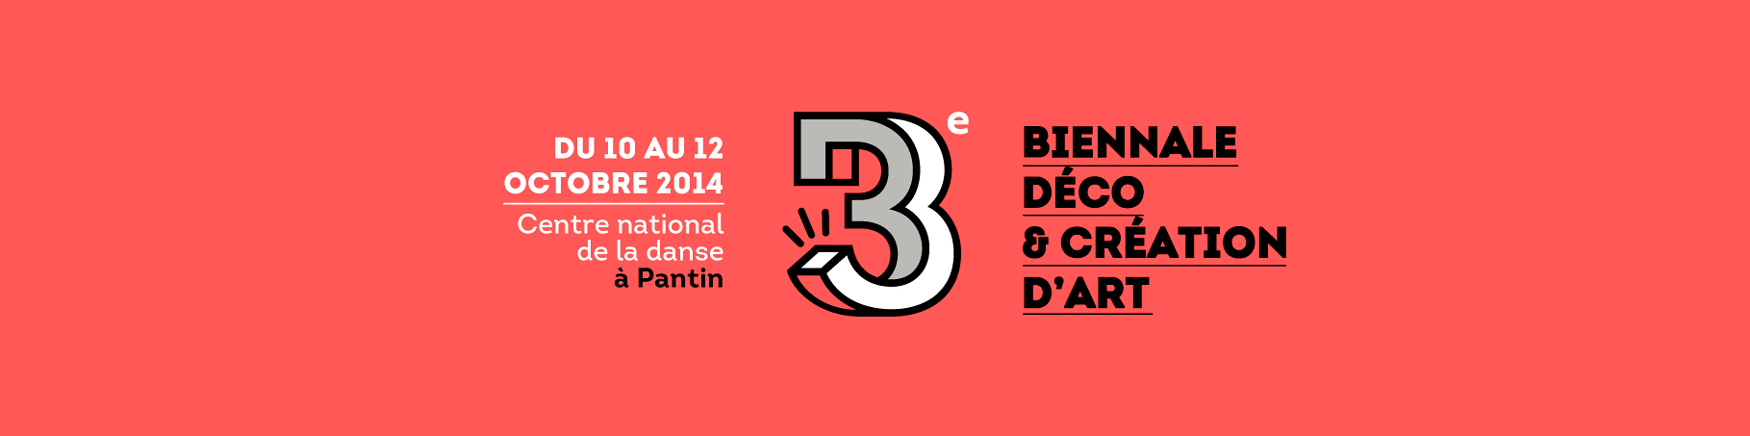 P le des m tiers d 39 art est ensemble for Biennale artisanat d art